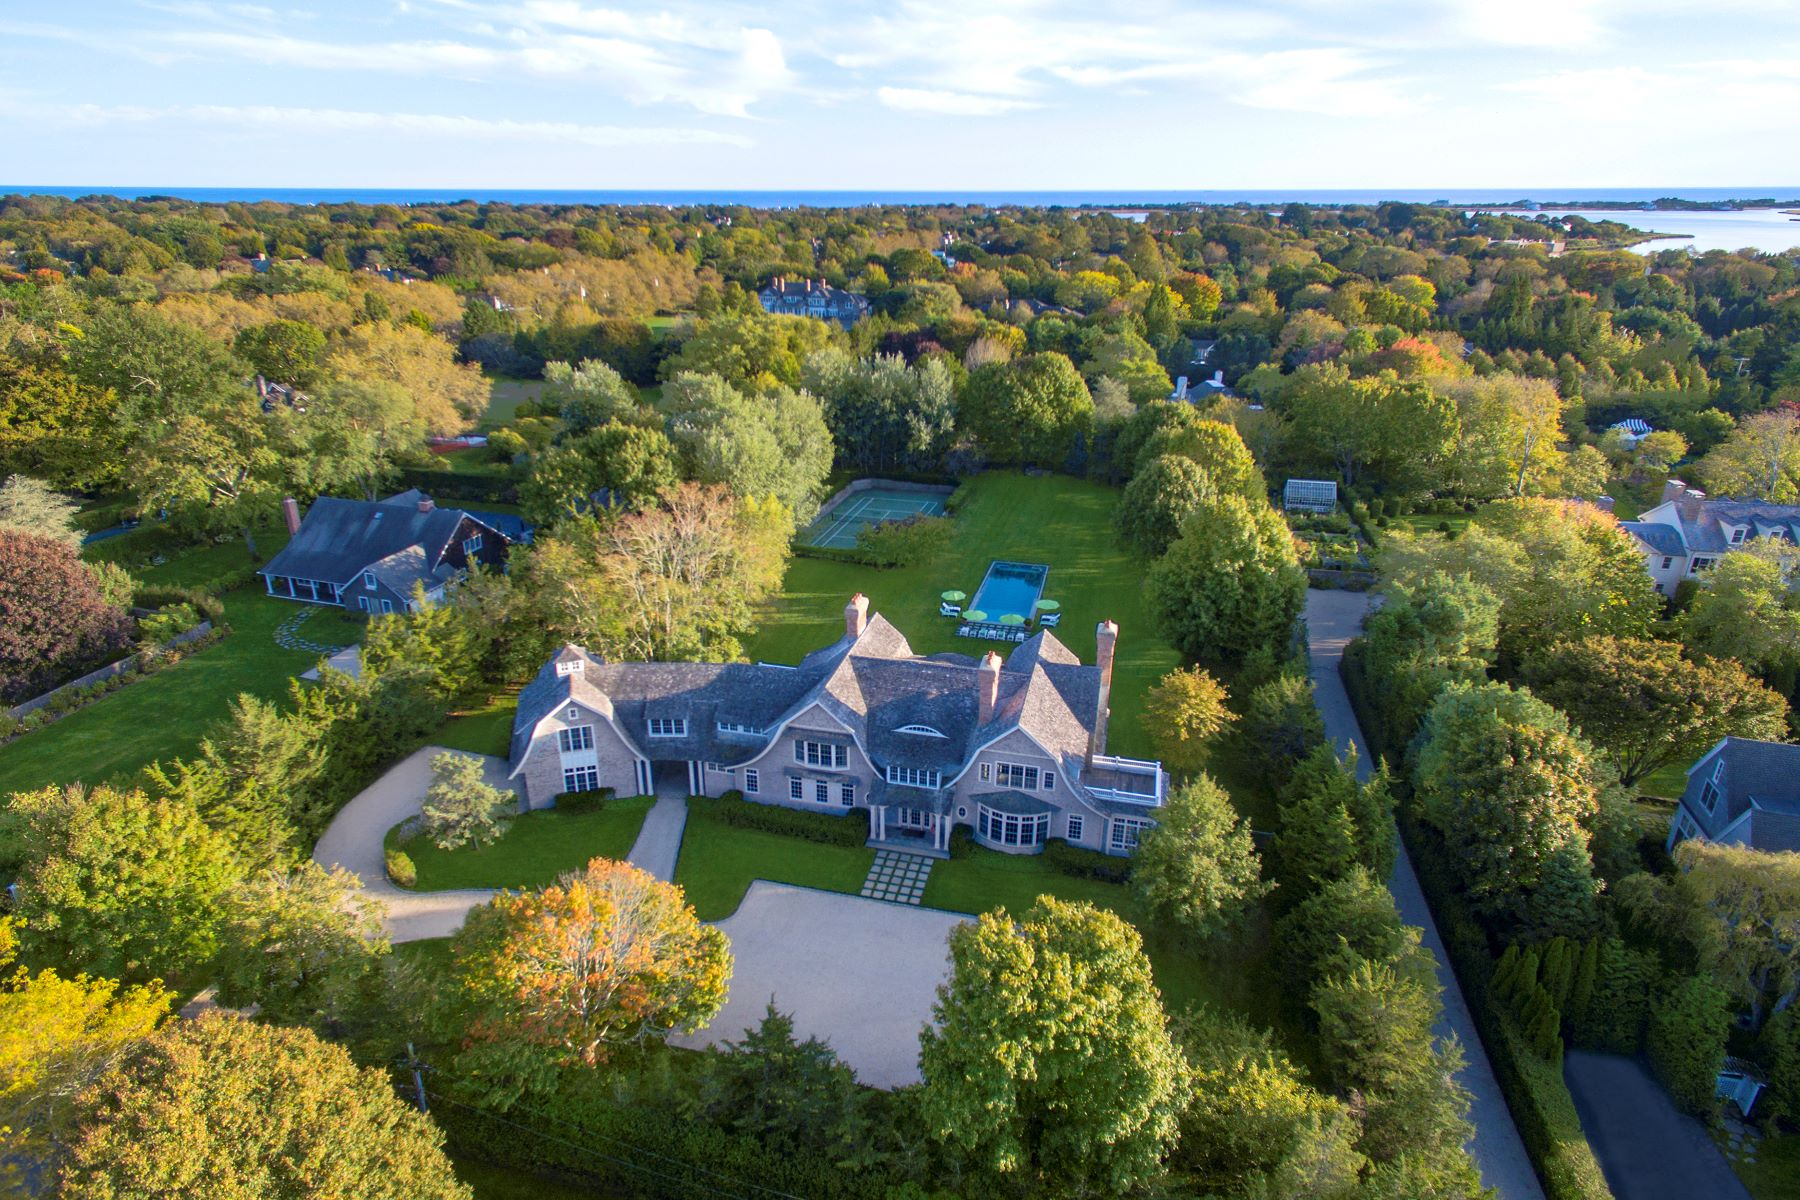 Single Family Homes for Active at Master-Designed Shingle Style Home 56 Barnhart Street Southampton, New York 11968 United States